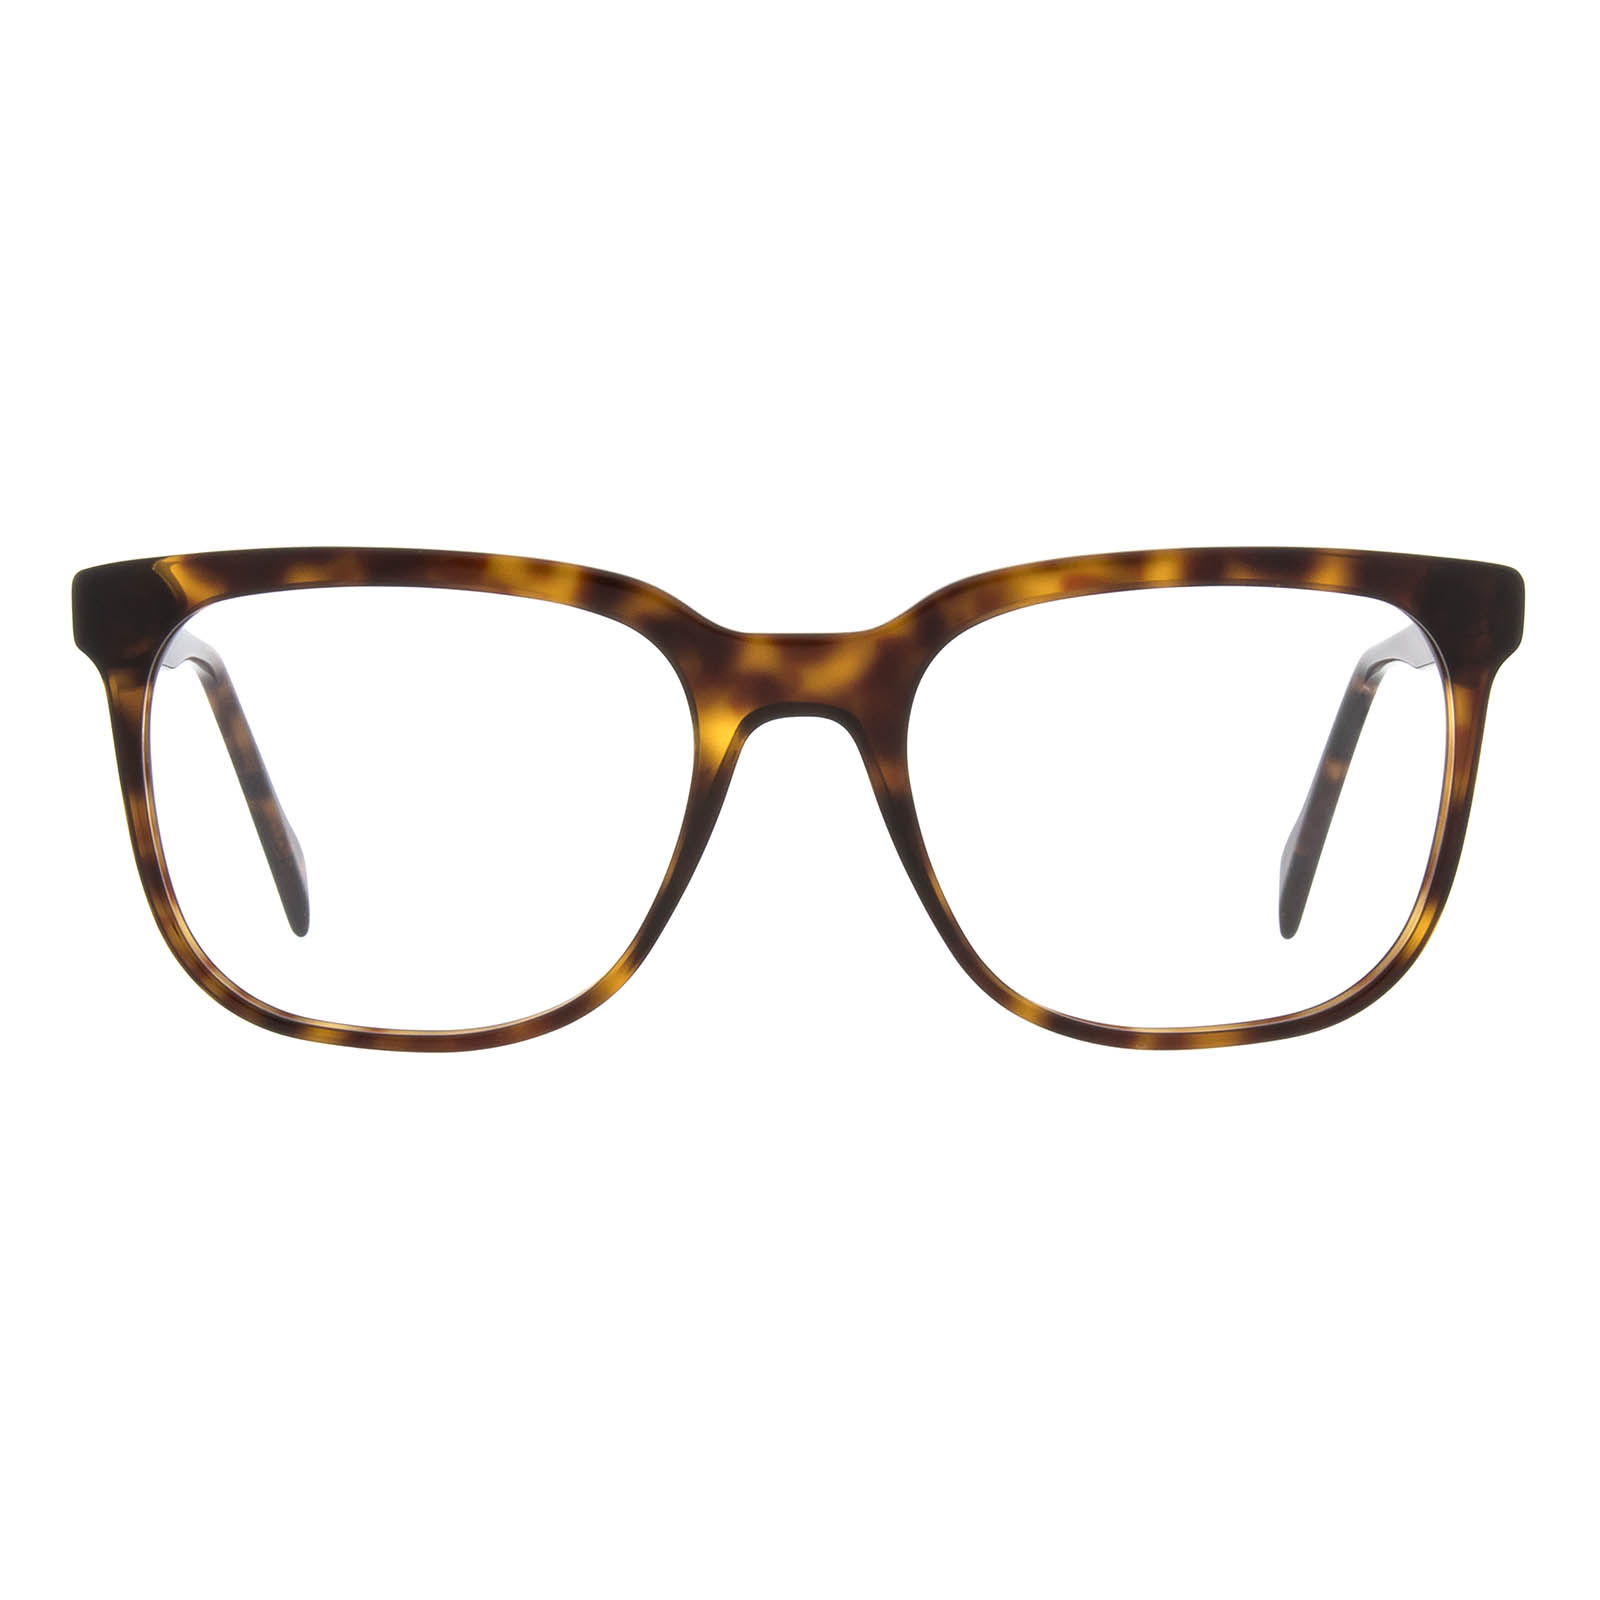 ANDY WOLF EYEWEAR_4593_03_front